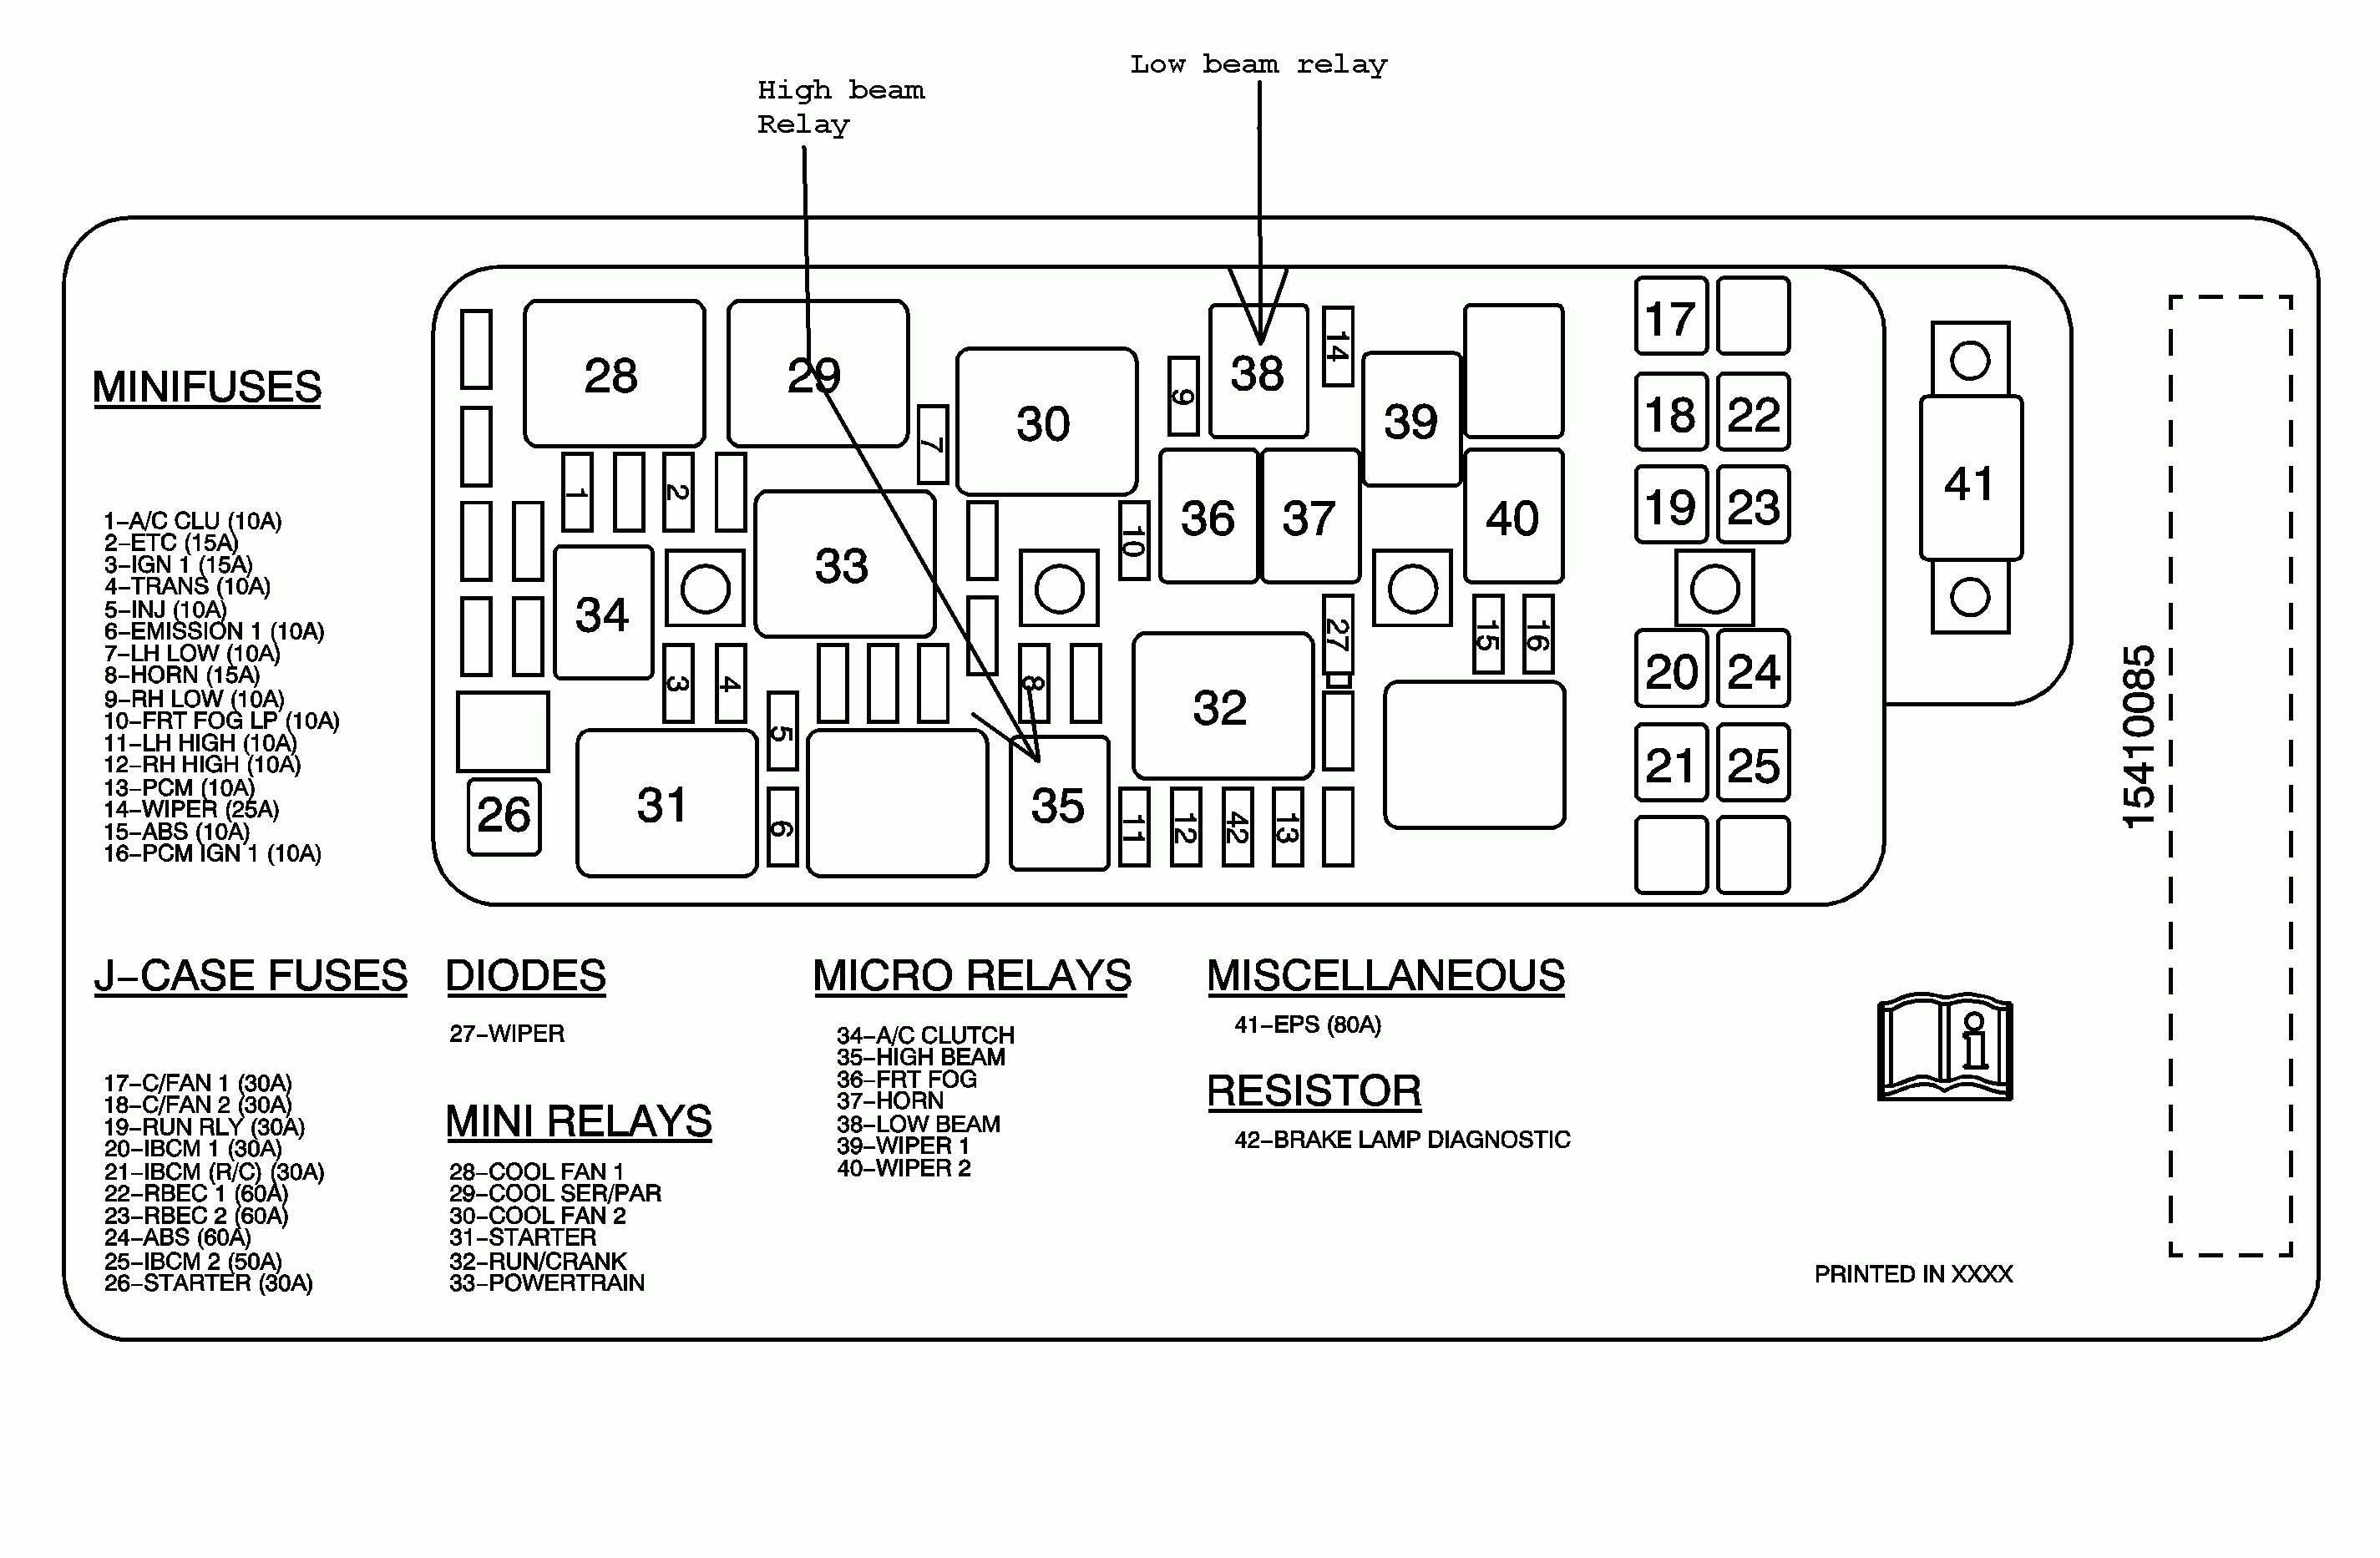 Kubota Rtv 900 Fuse Box Location. Kubota. Wiring Diagram